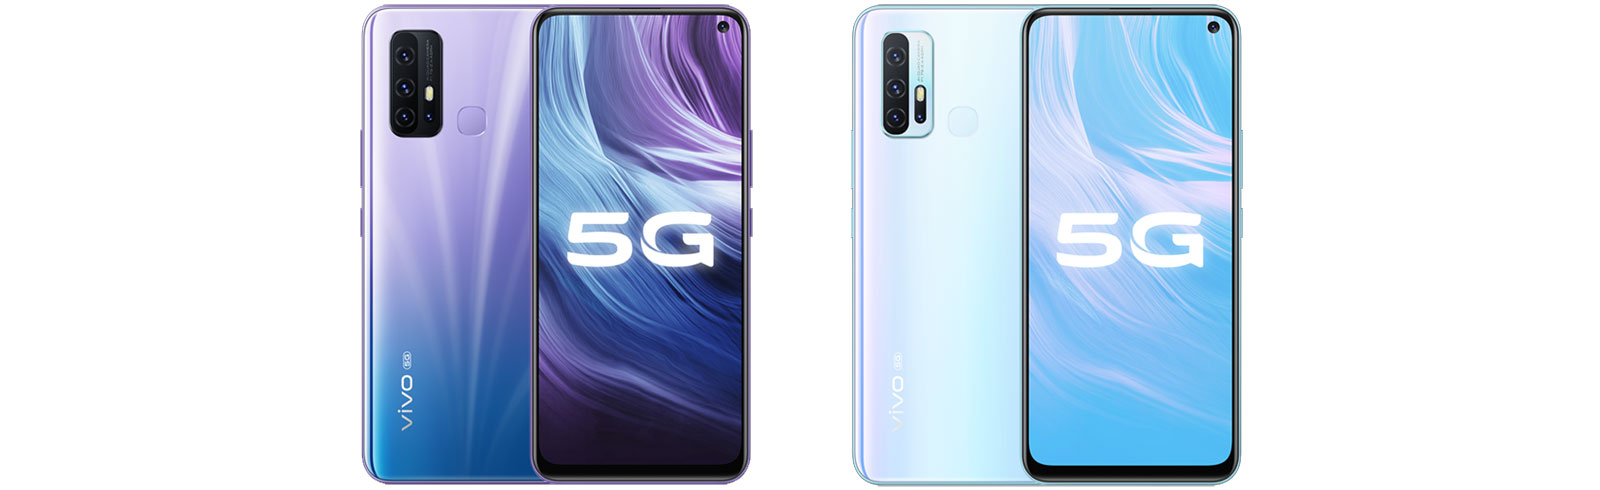 Vivo Z6 specifications and price